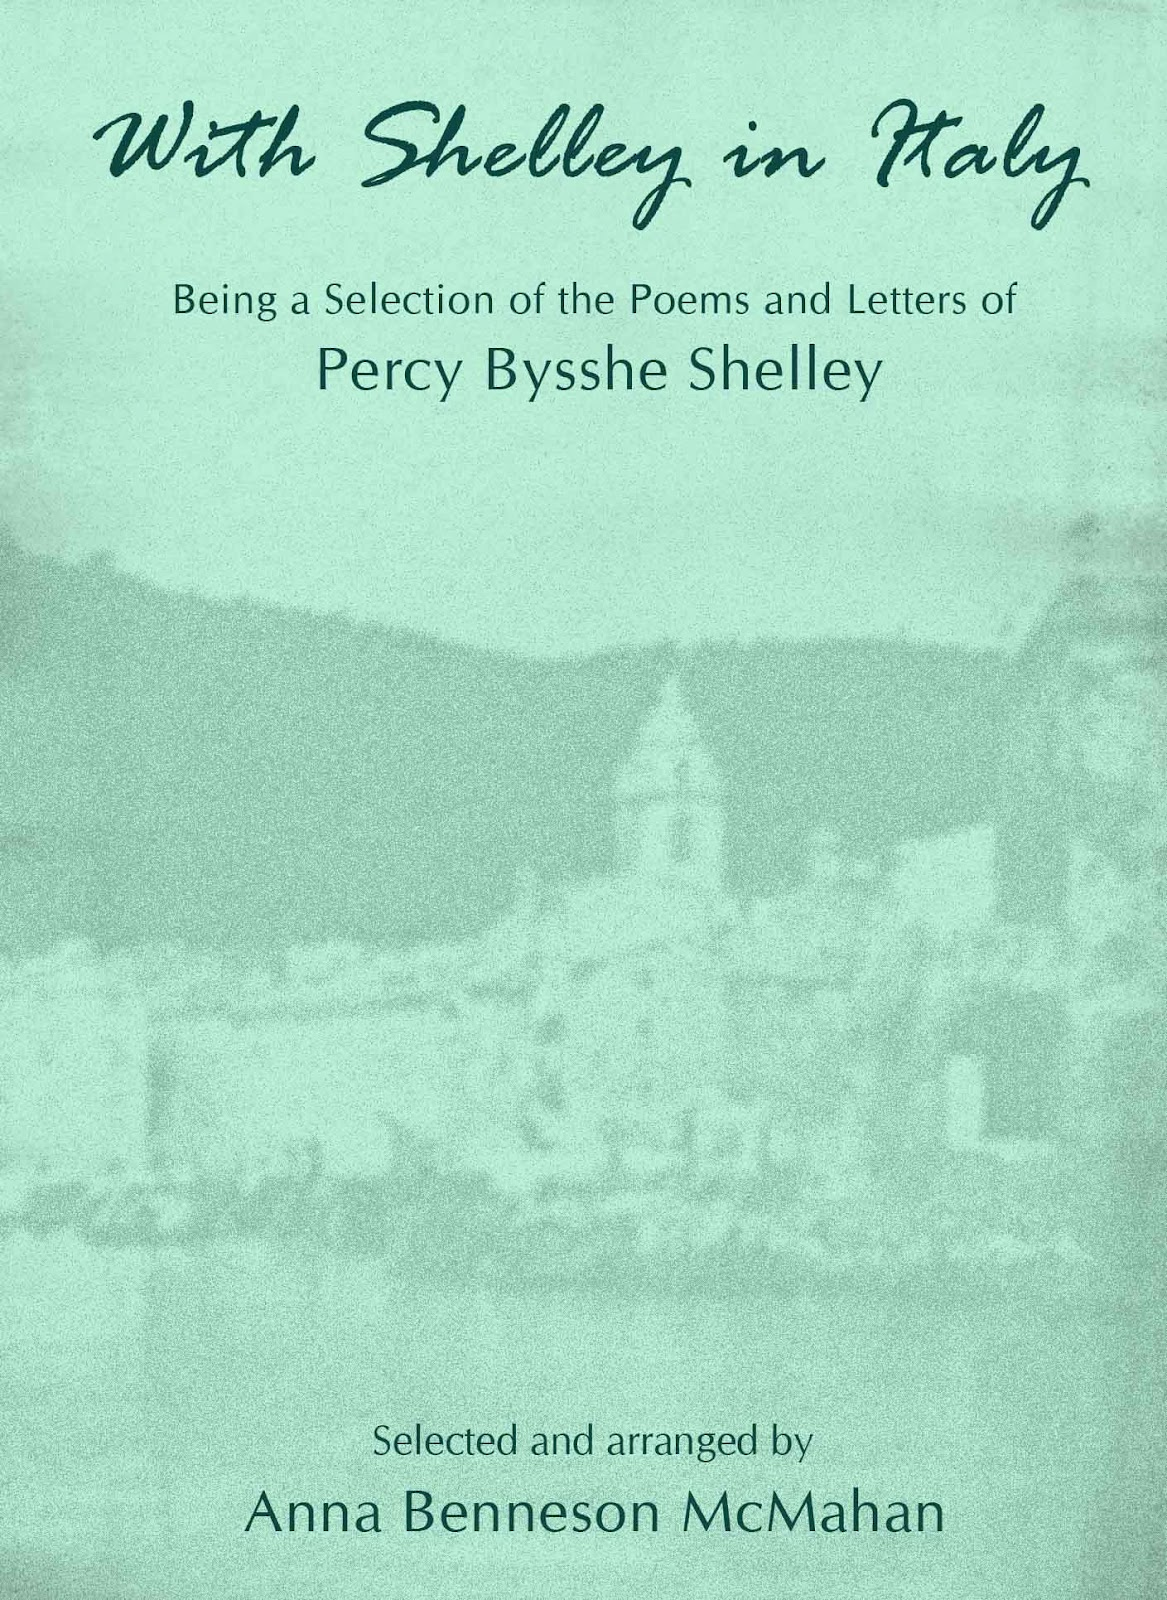 percy shelley essay on love Analysis of percy shelley's prometheus unbound essay home \ free essay sample papers \ analysis of percy shelley's prometheus unbound essay complex symbolic images of the shelley's drama, when the author is personifying nature, love, beauty.